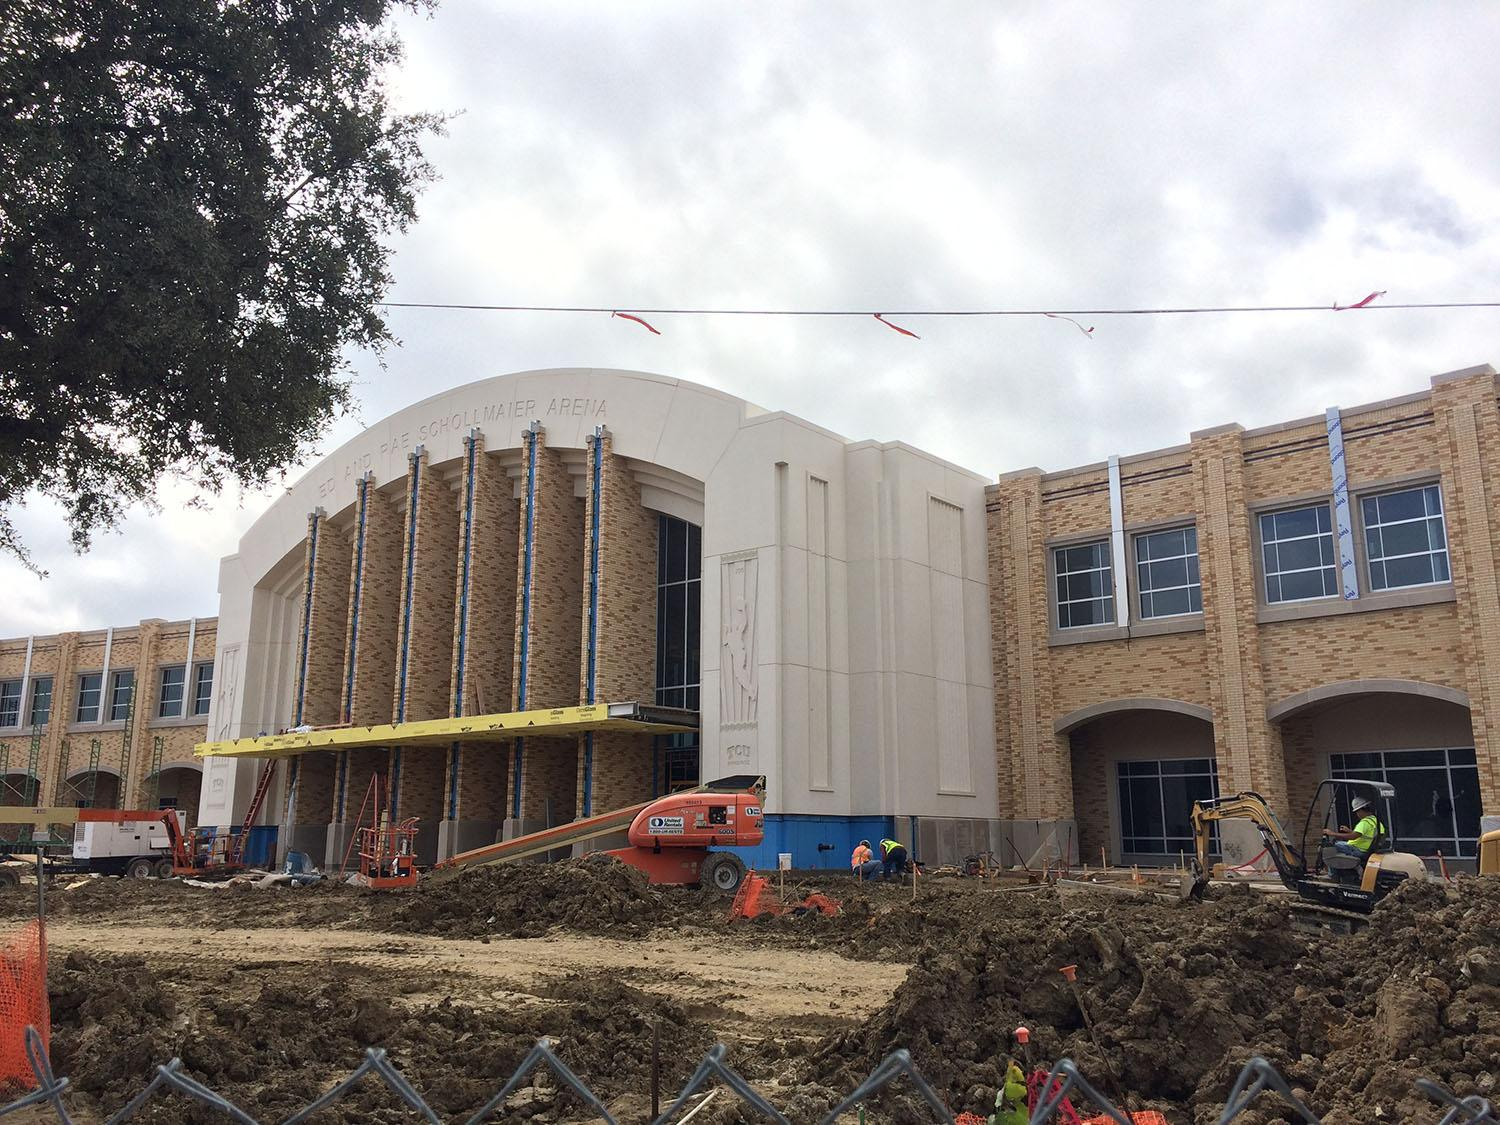 TCU's new basketball arena will not open on time for the start of the men's and women's basketball seasons.